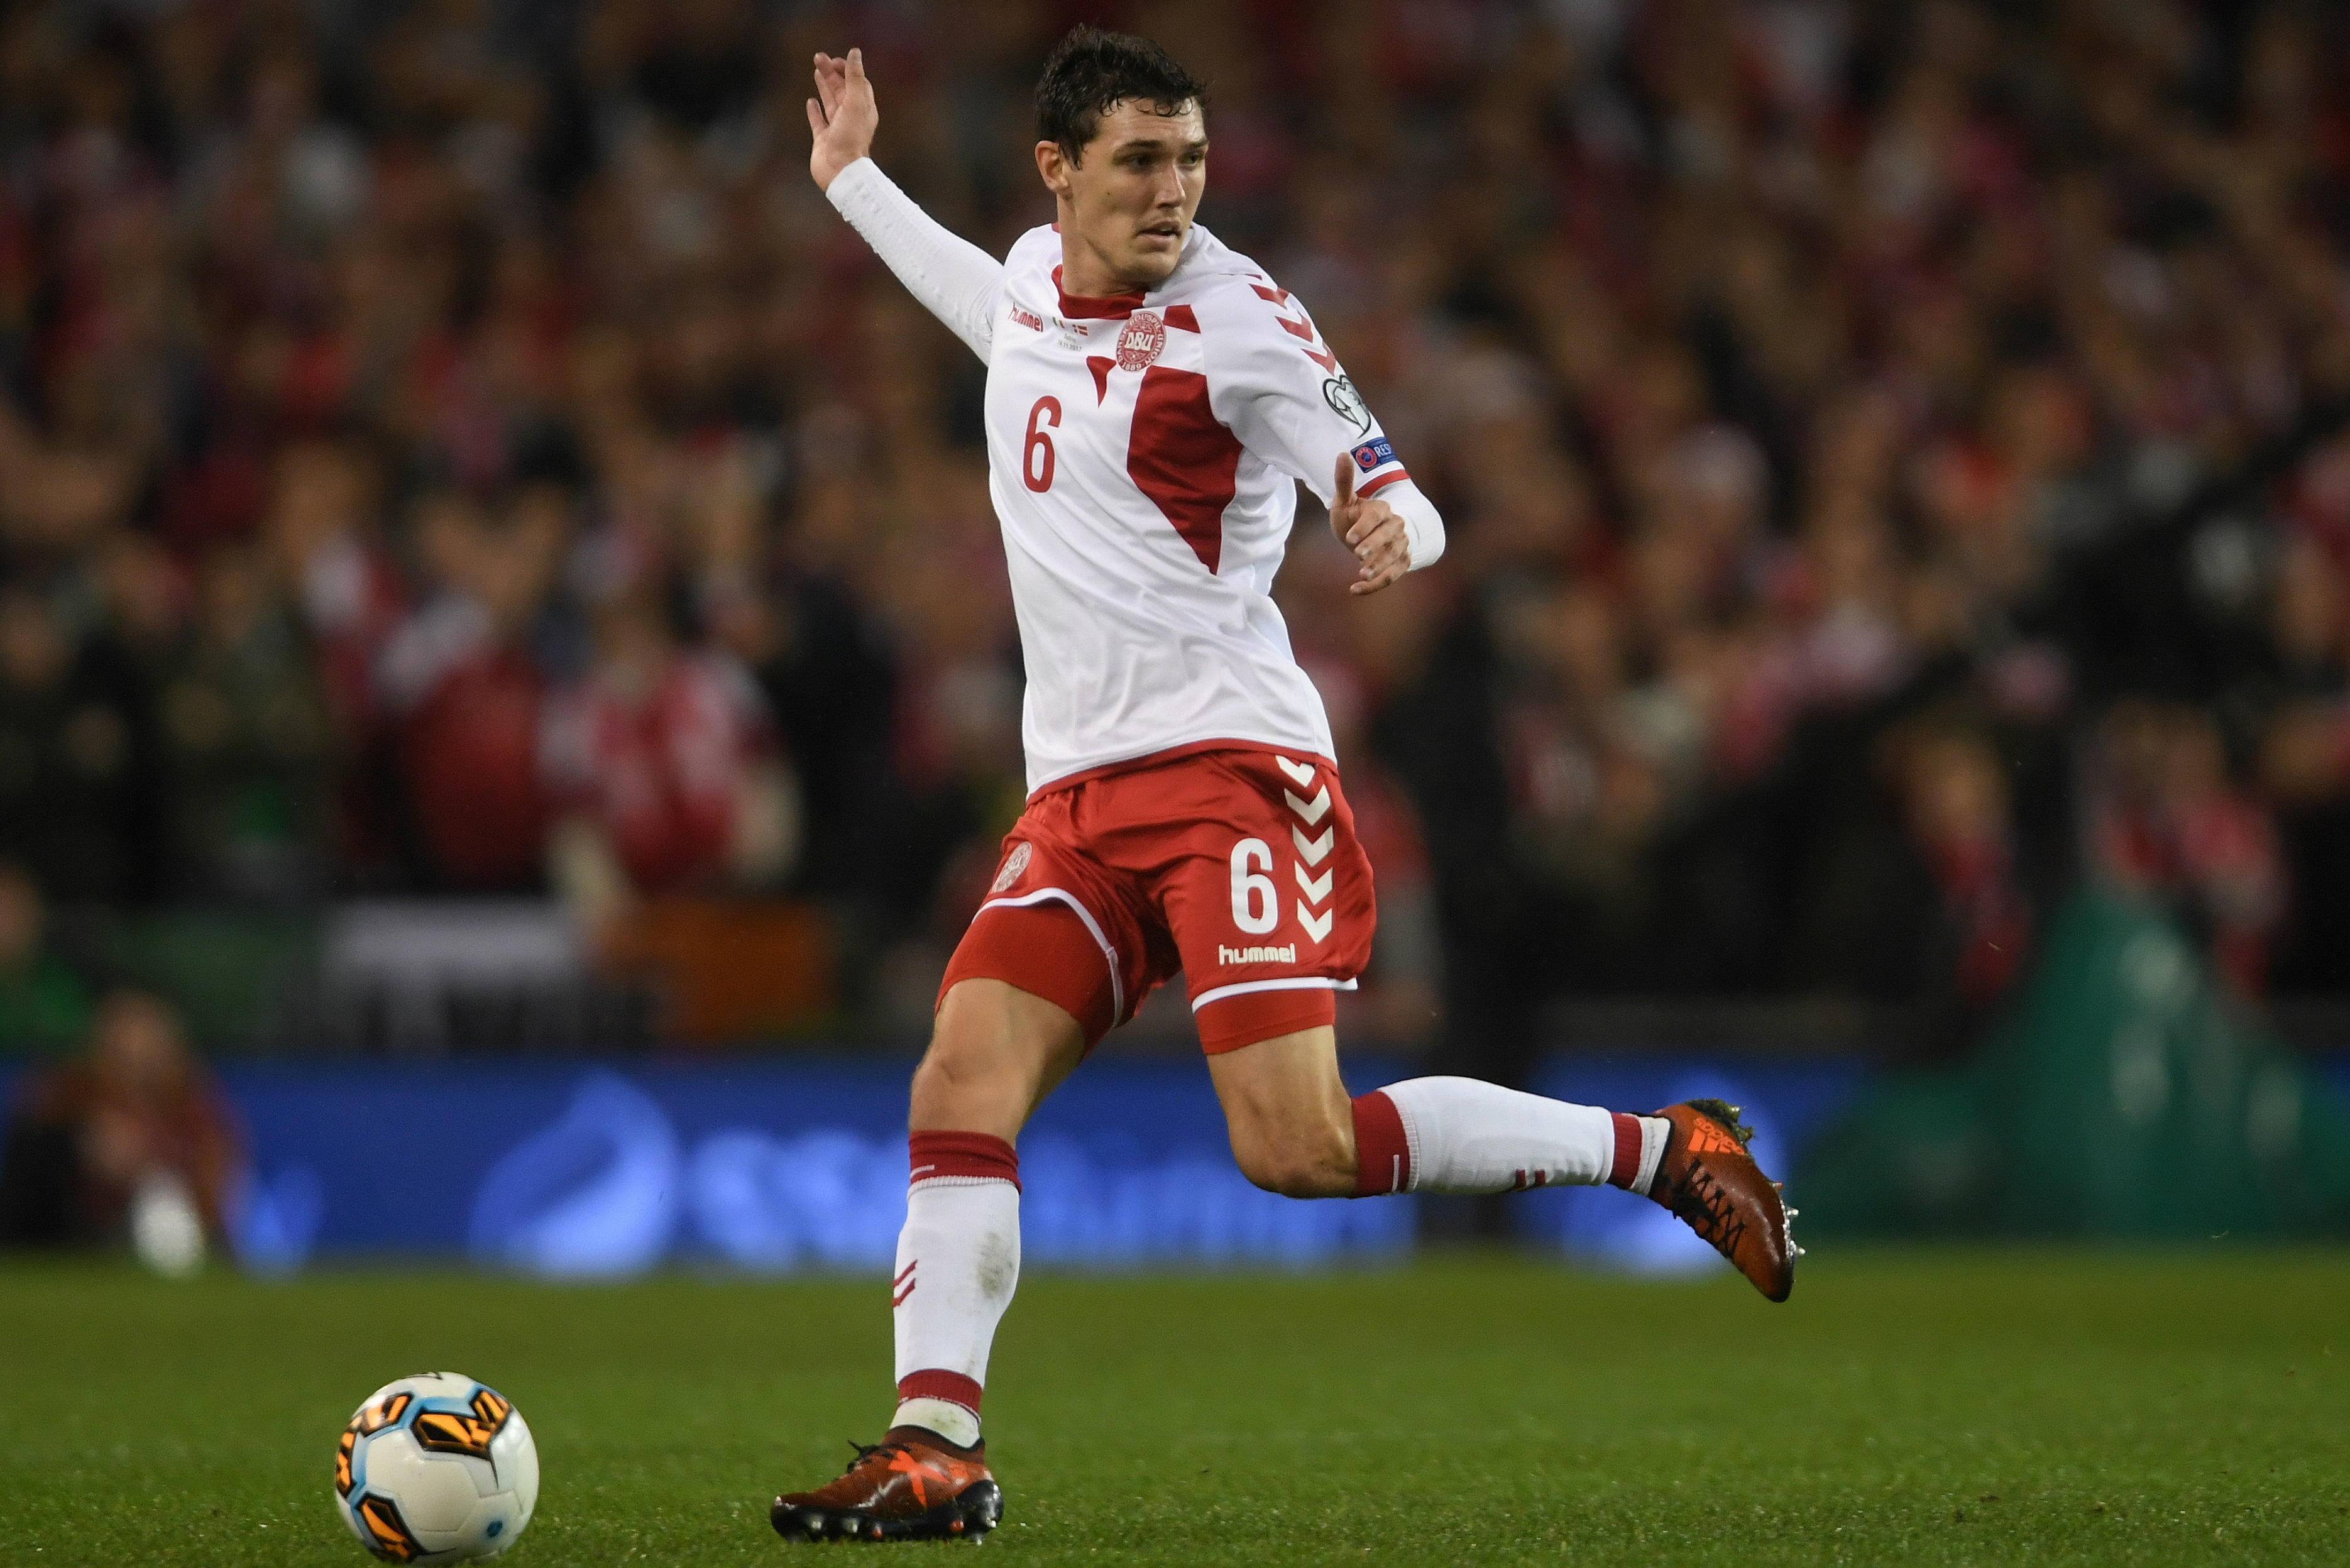 Andreas Christensen plays his club football with EPL champions Chelsea.